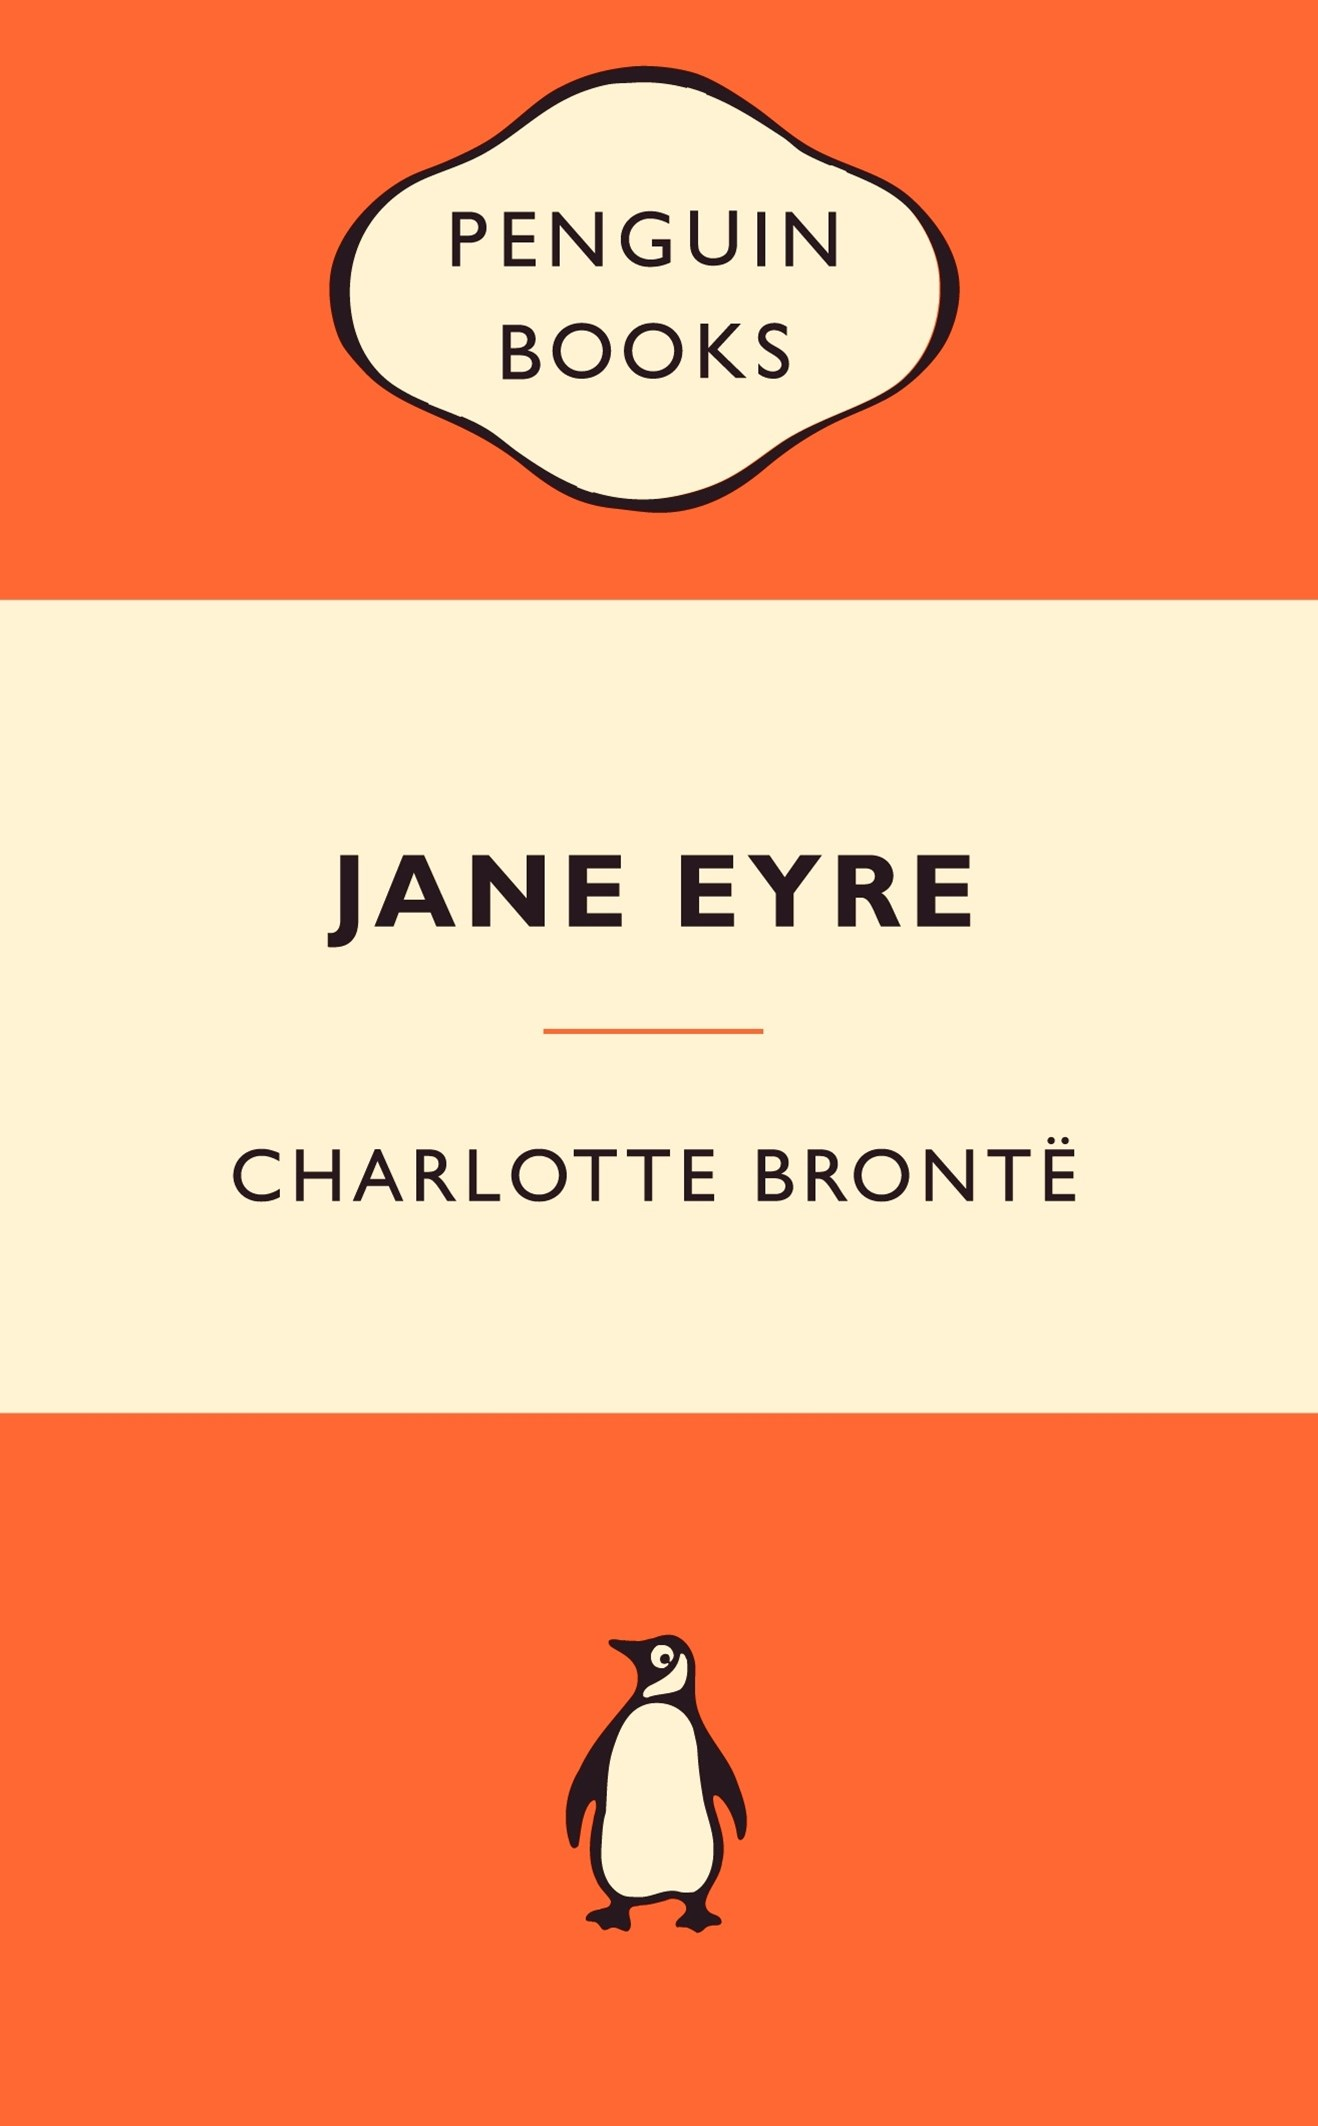 Jane Eyre: Popular Penguins